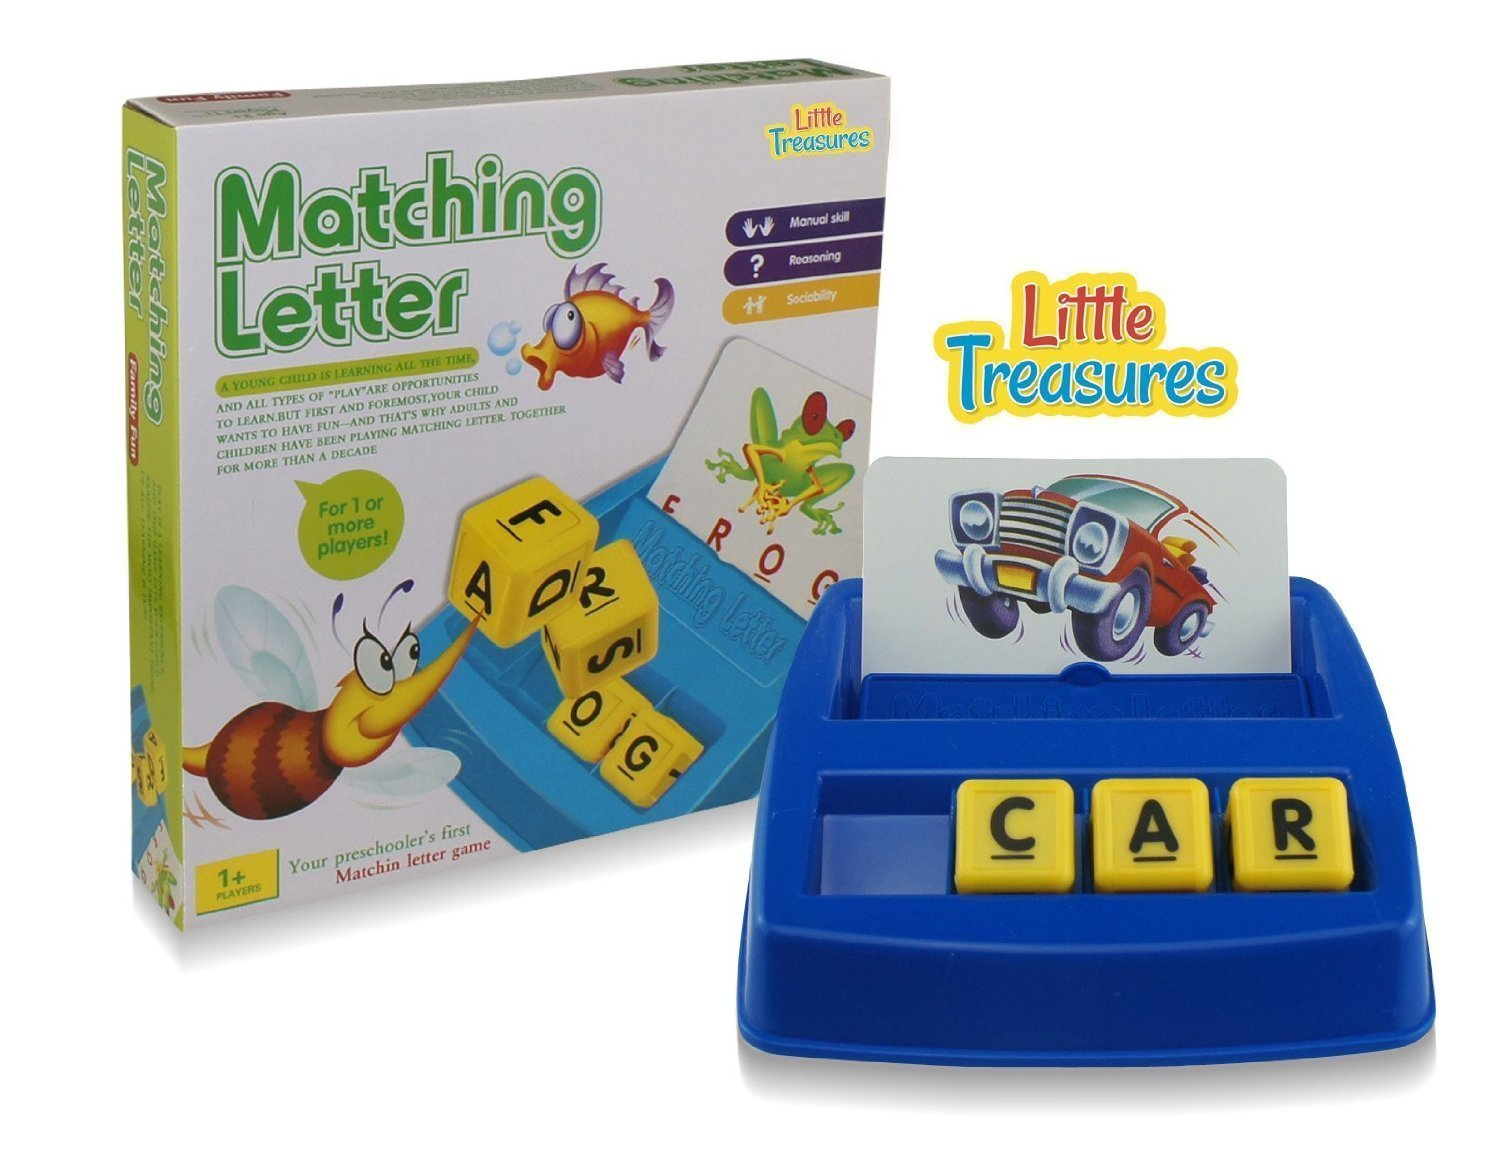 amazoncom little treasures matching letter game teaches word recognition spelling increases memory 3 years up toys games